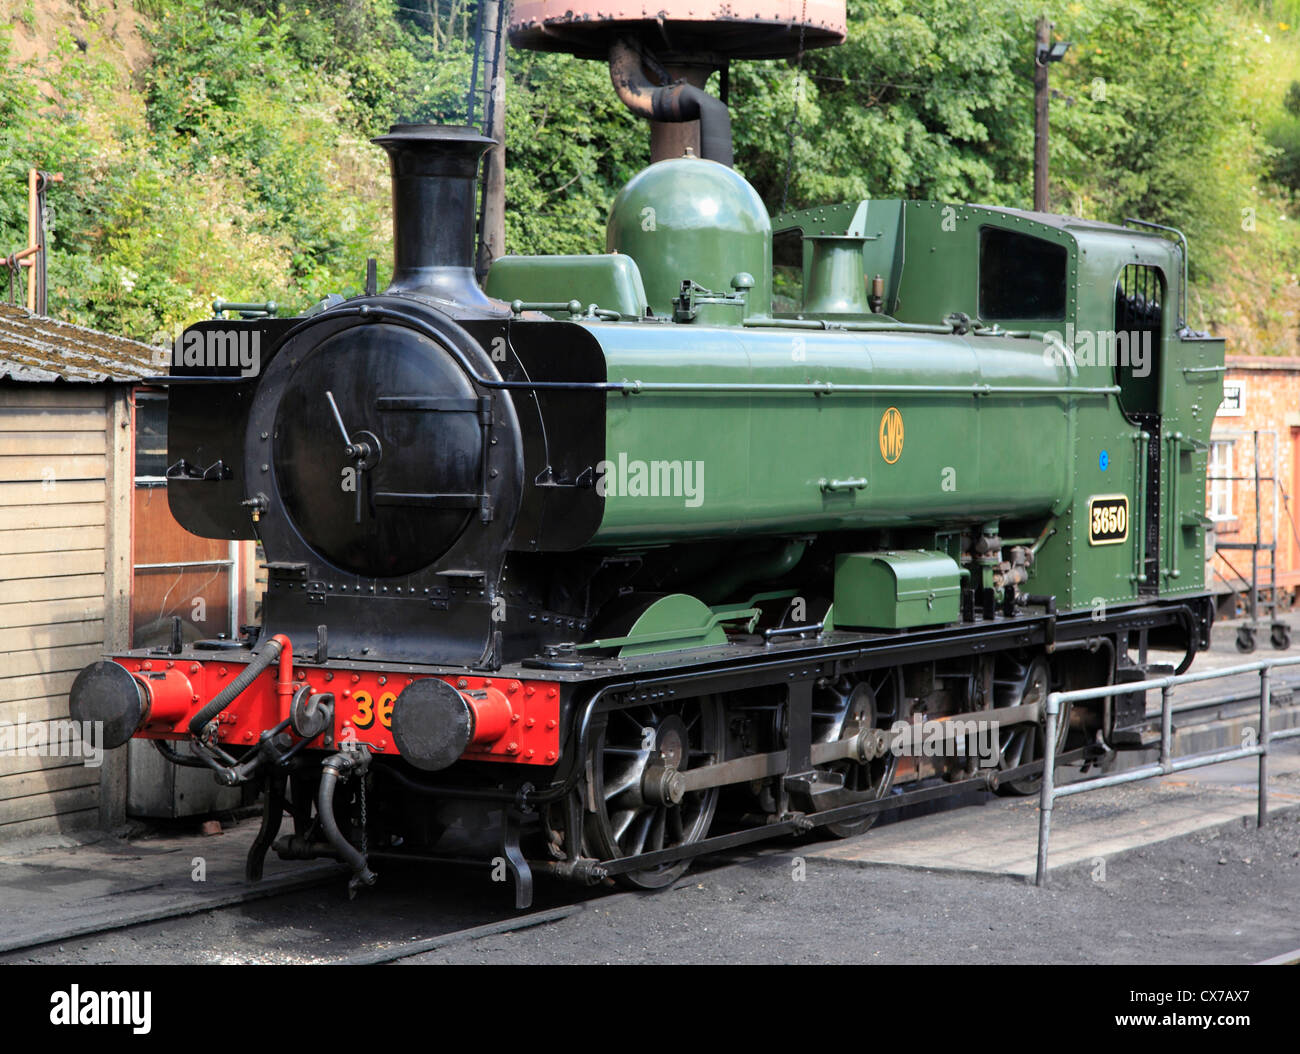 Pannier Tank No.3650 0-6-0 steam locomotive at Bewdley's Severn Valley Railway Station, Worcestershire, England - Stock Image